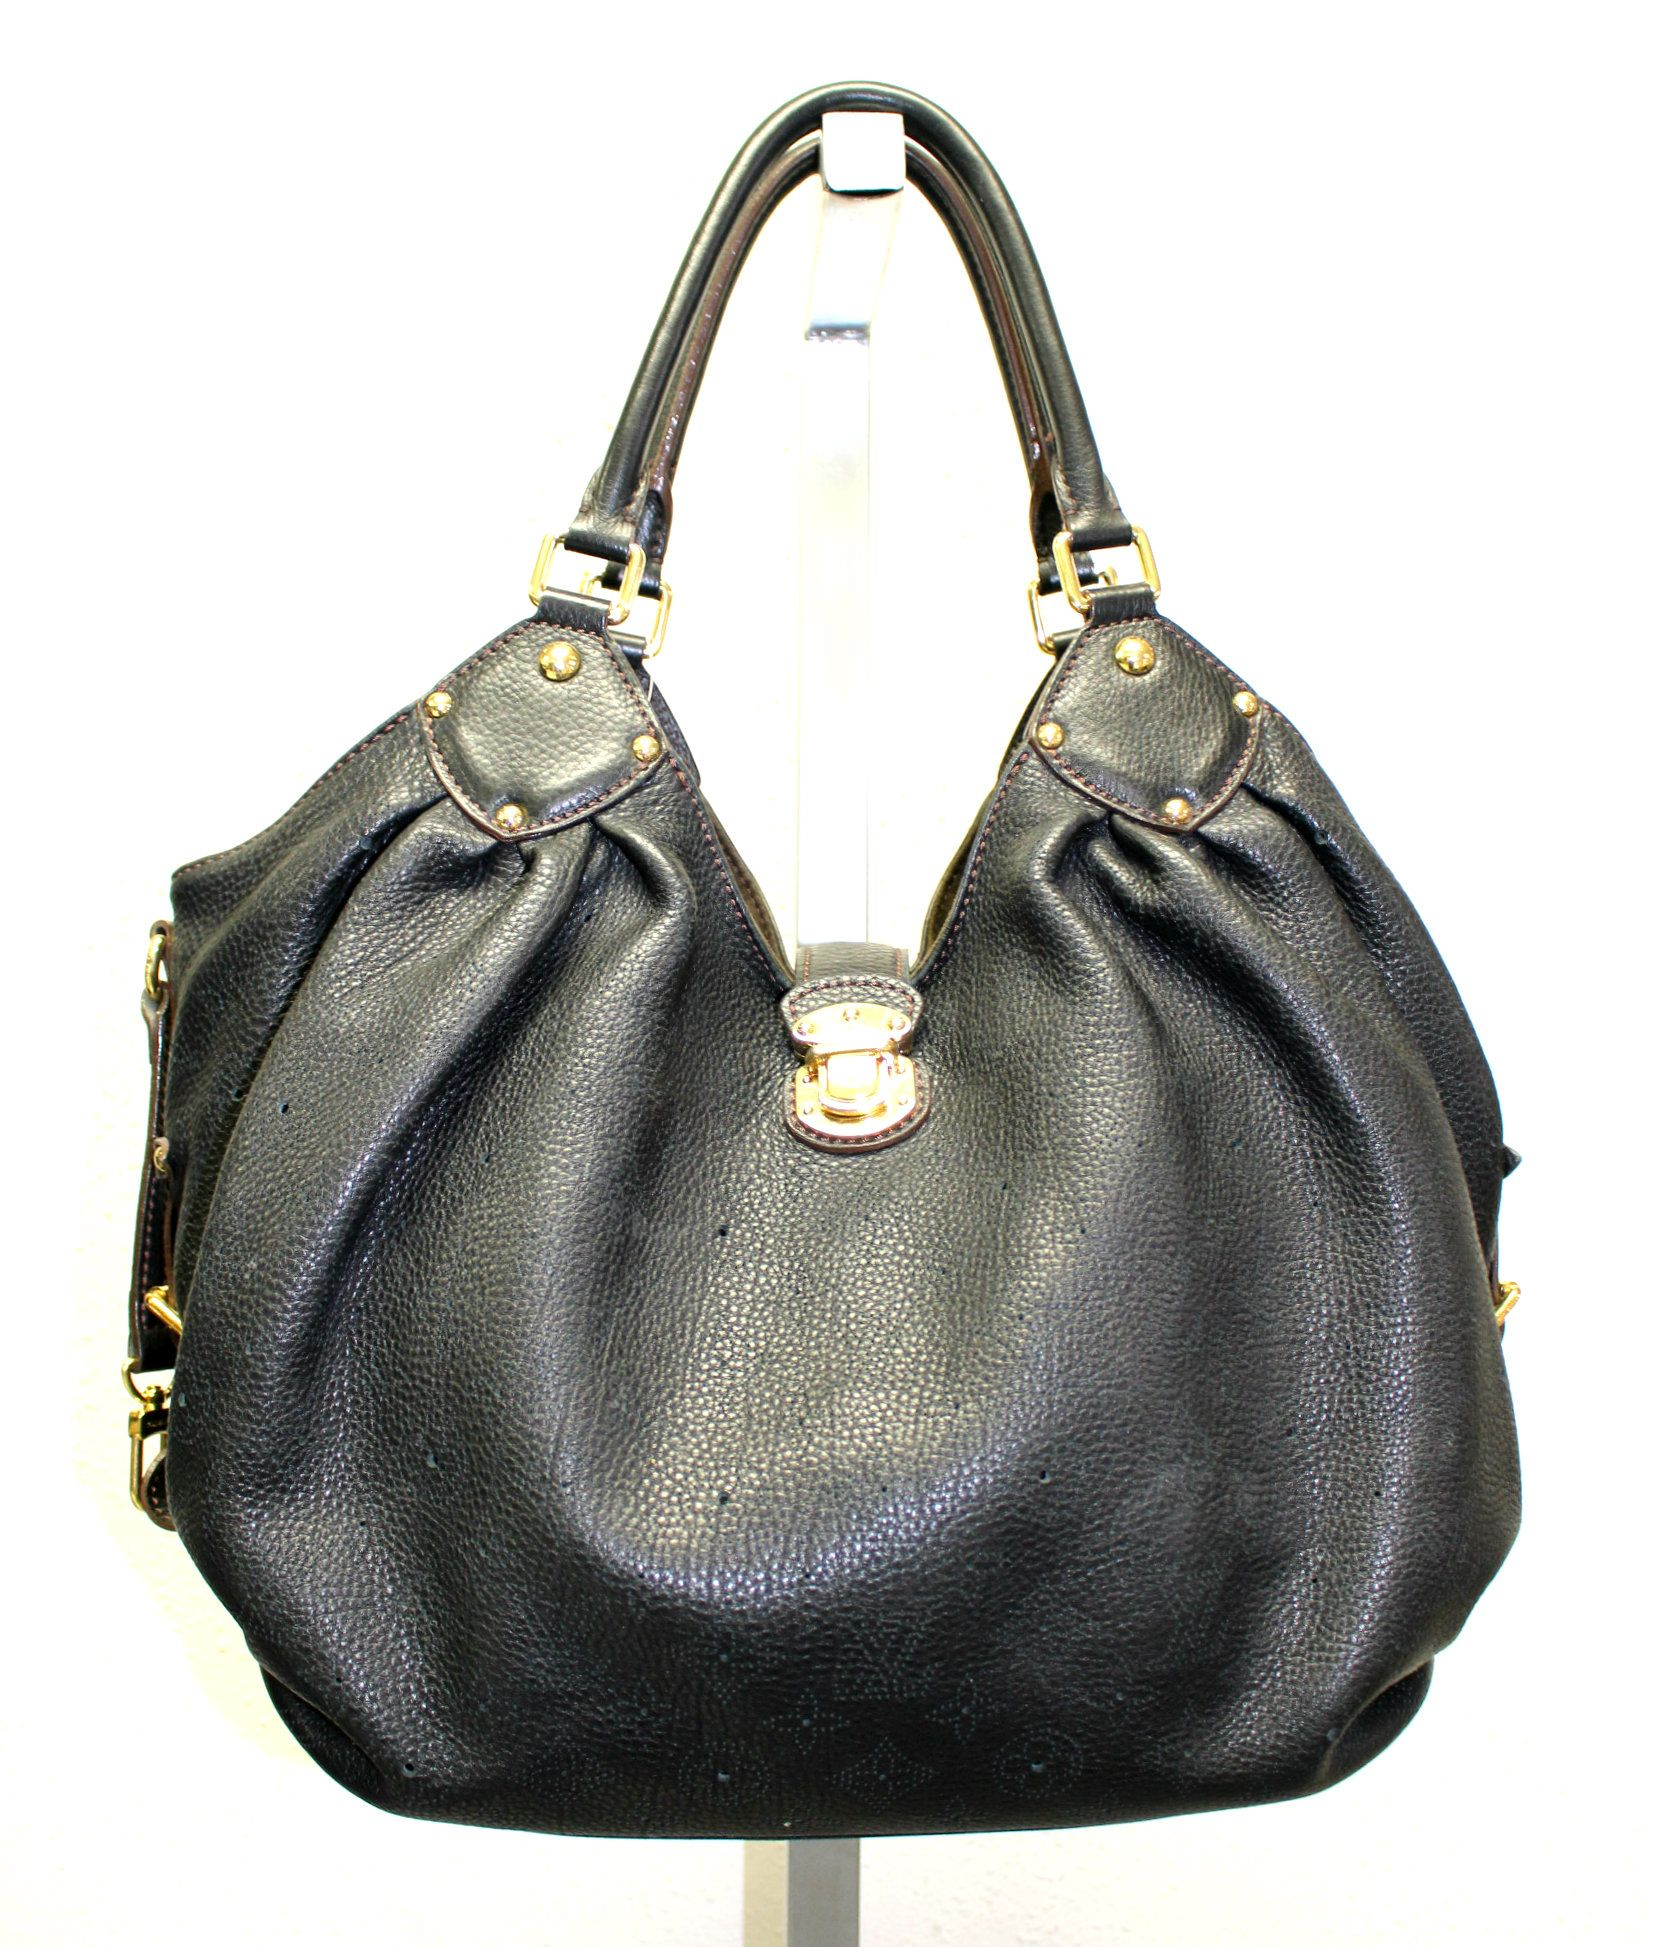 302c549db39c Up for sale.. a stunning authentic Louis Vuitton Mahina XL hobo bag   FlairTradeTO.